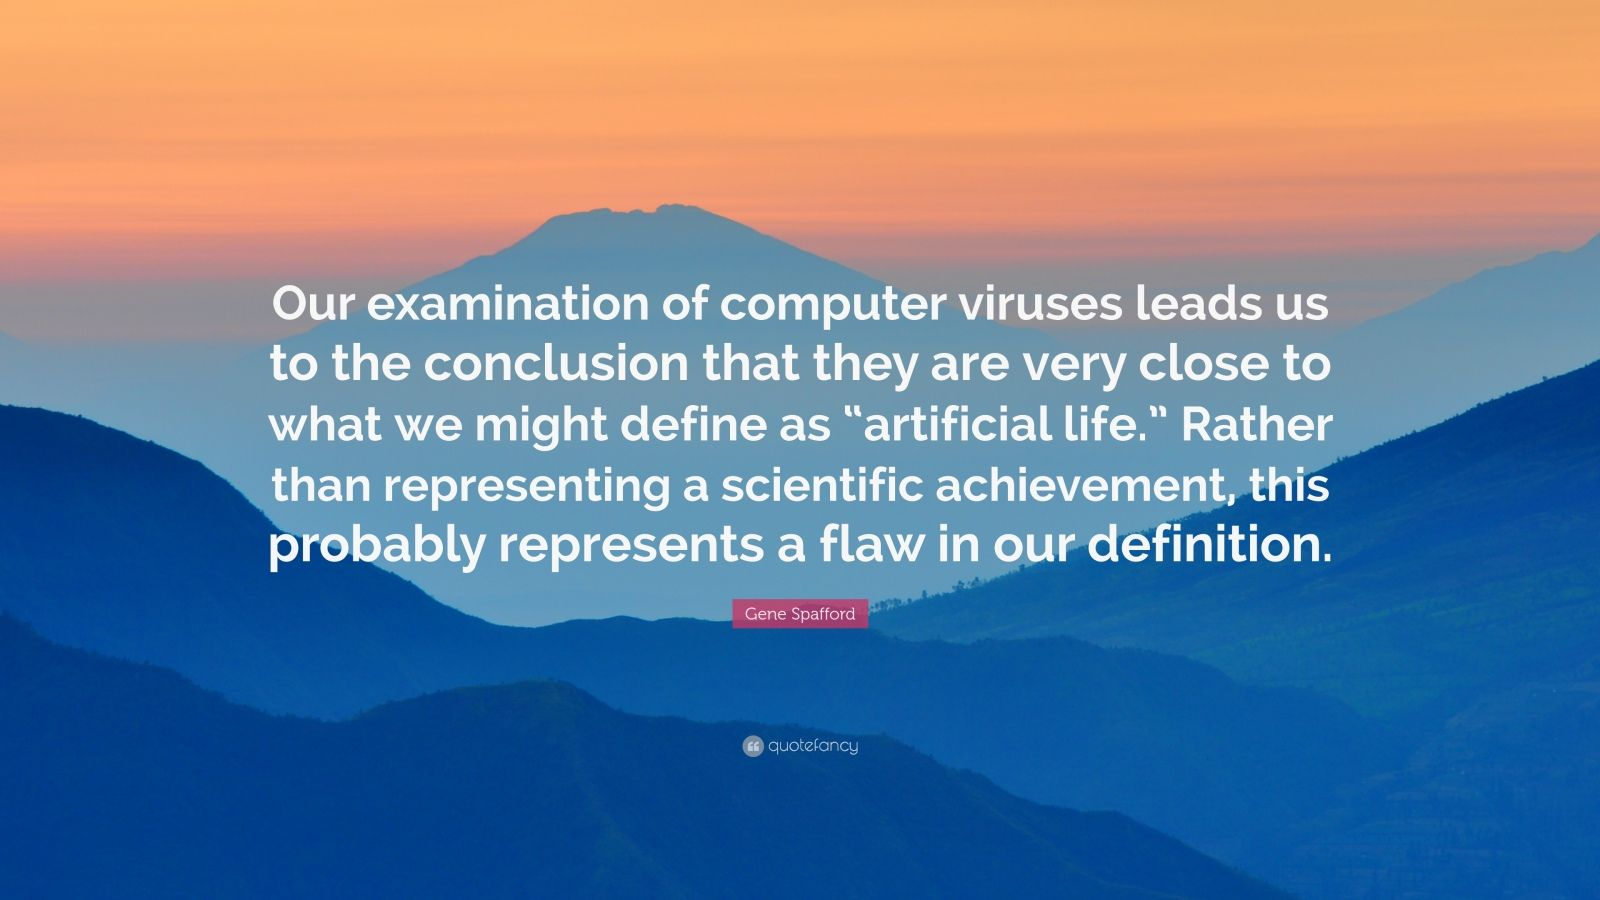 an examination of computer viruses Examination of computer viruses in eleven pages this research paper considers computer viruses and their consequences in terms of societal effects, costs, future implications, and also examines marxist theory as it applies to this topic.